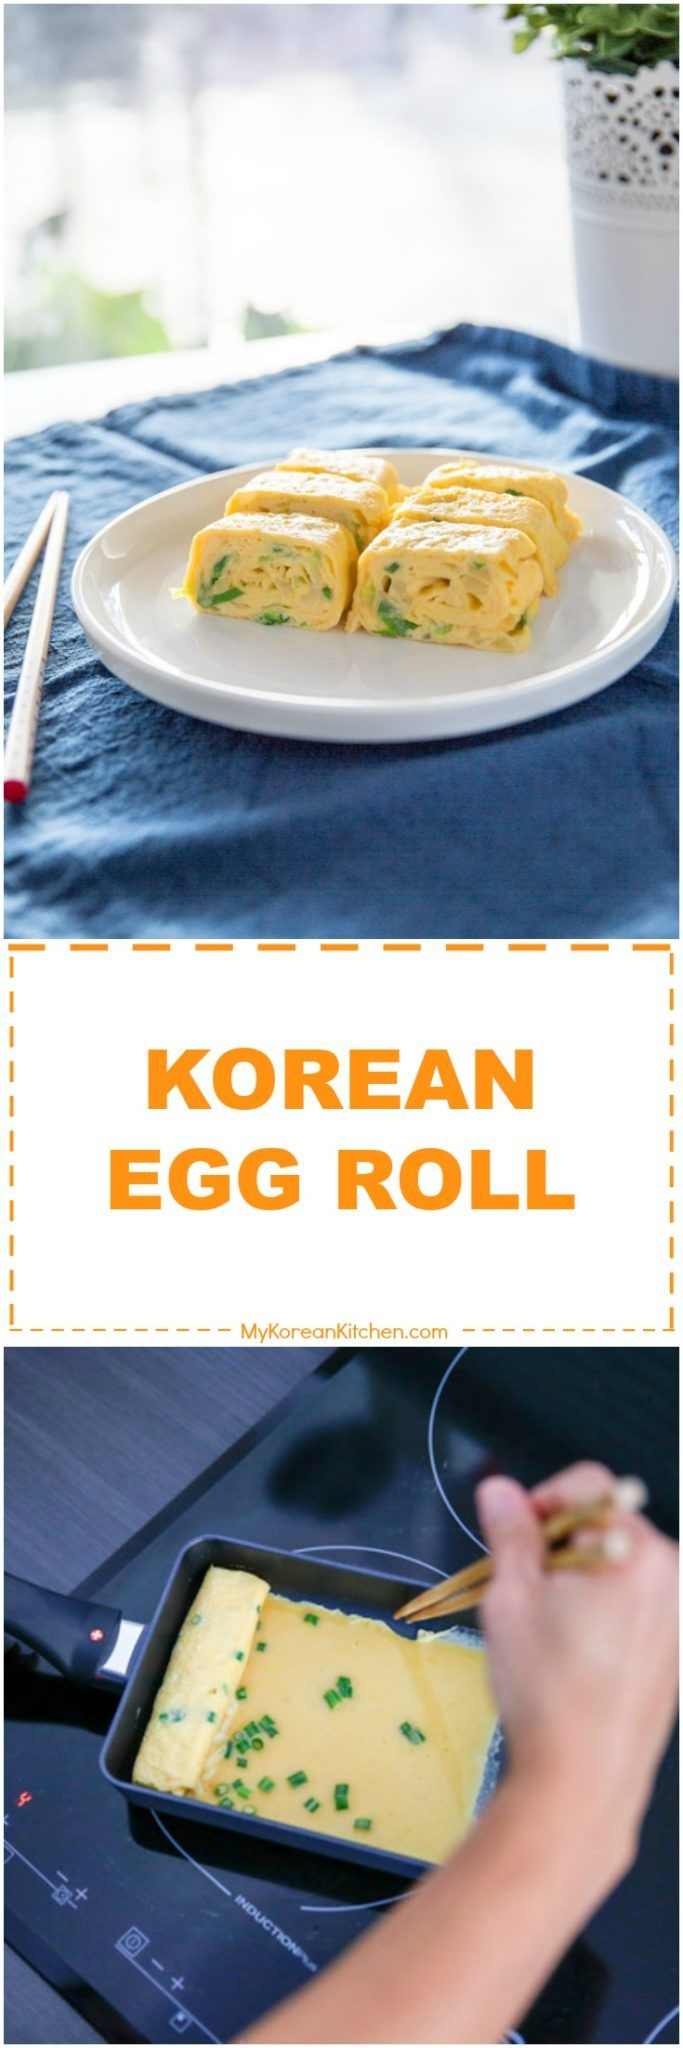 How to make Korean egg roll. It's a popular Korean side dish. Perfect addition to asian themed lunch box! | MyKoreanKitchen.com via @mykoreankitchen